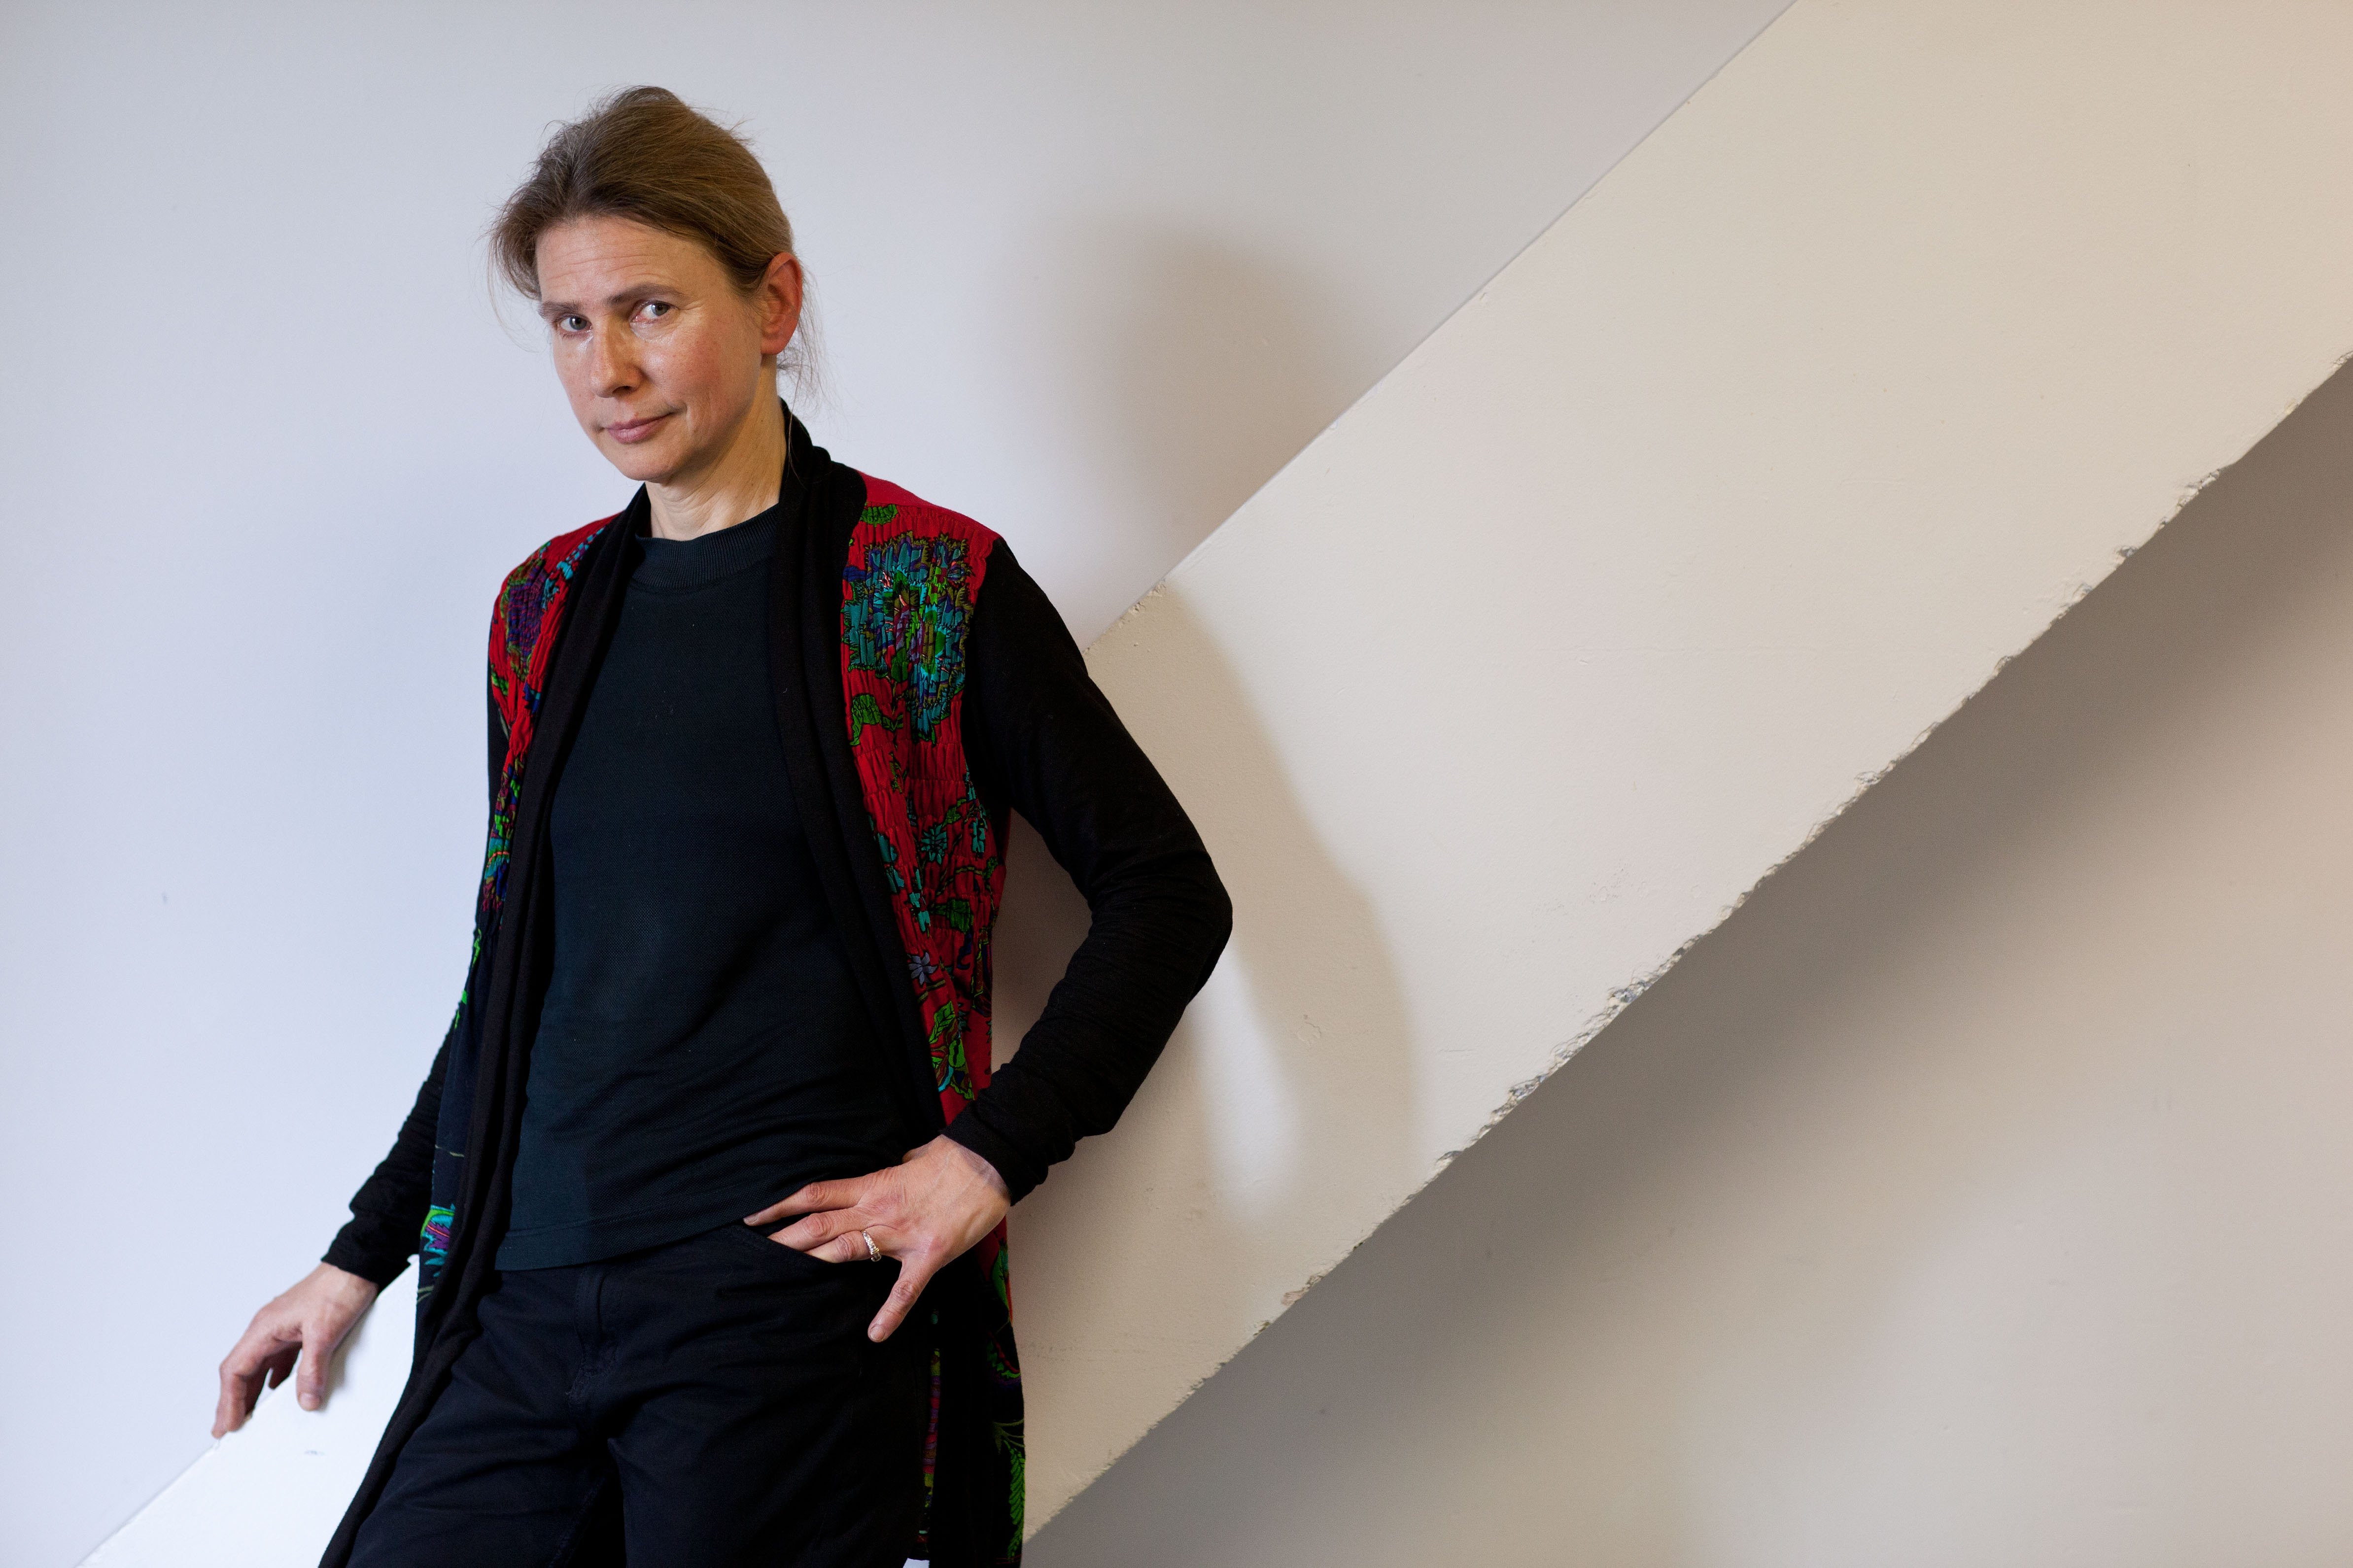 Author Lionel Shriver at the London Book Fair on April 15, 2013.